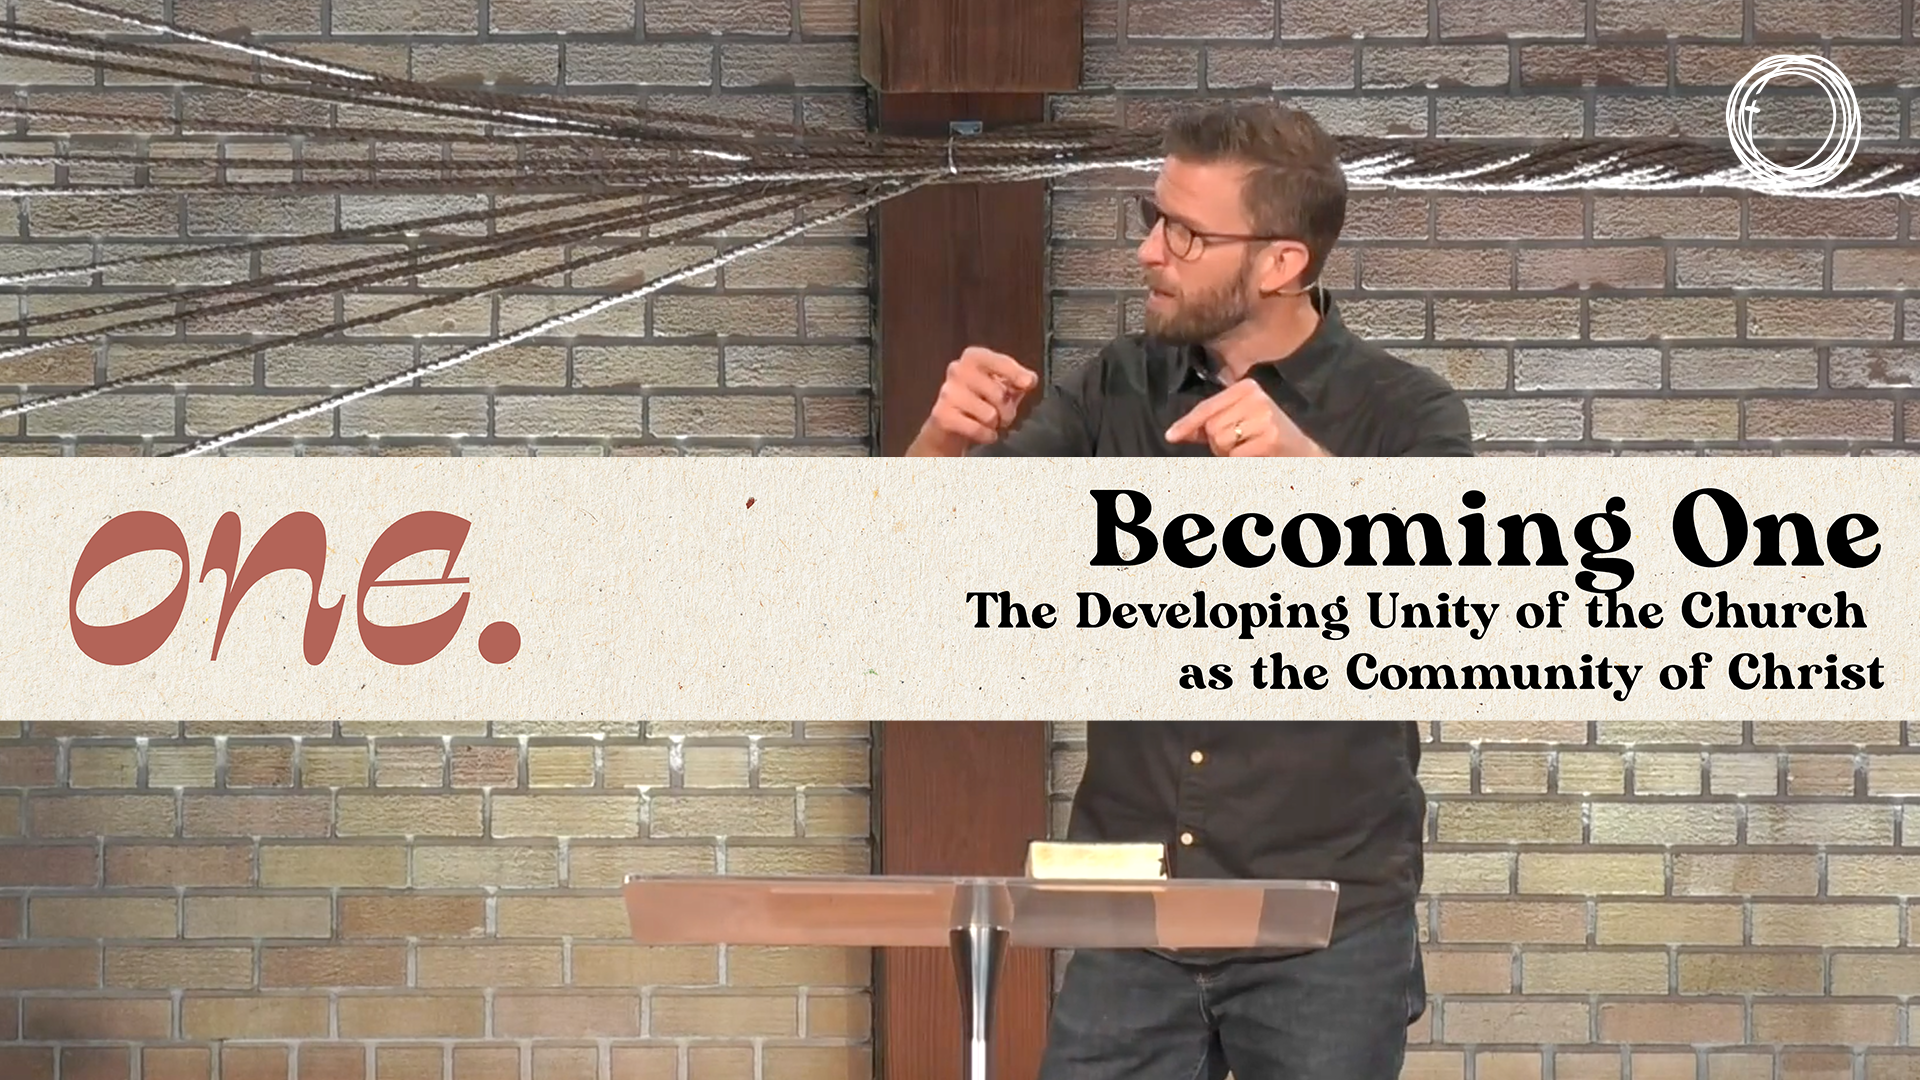 Becoming One: the developing unity of the church as the community of Christ